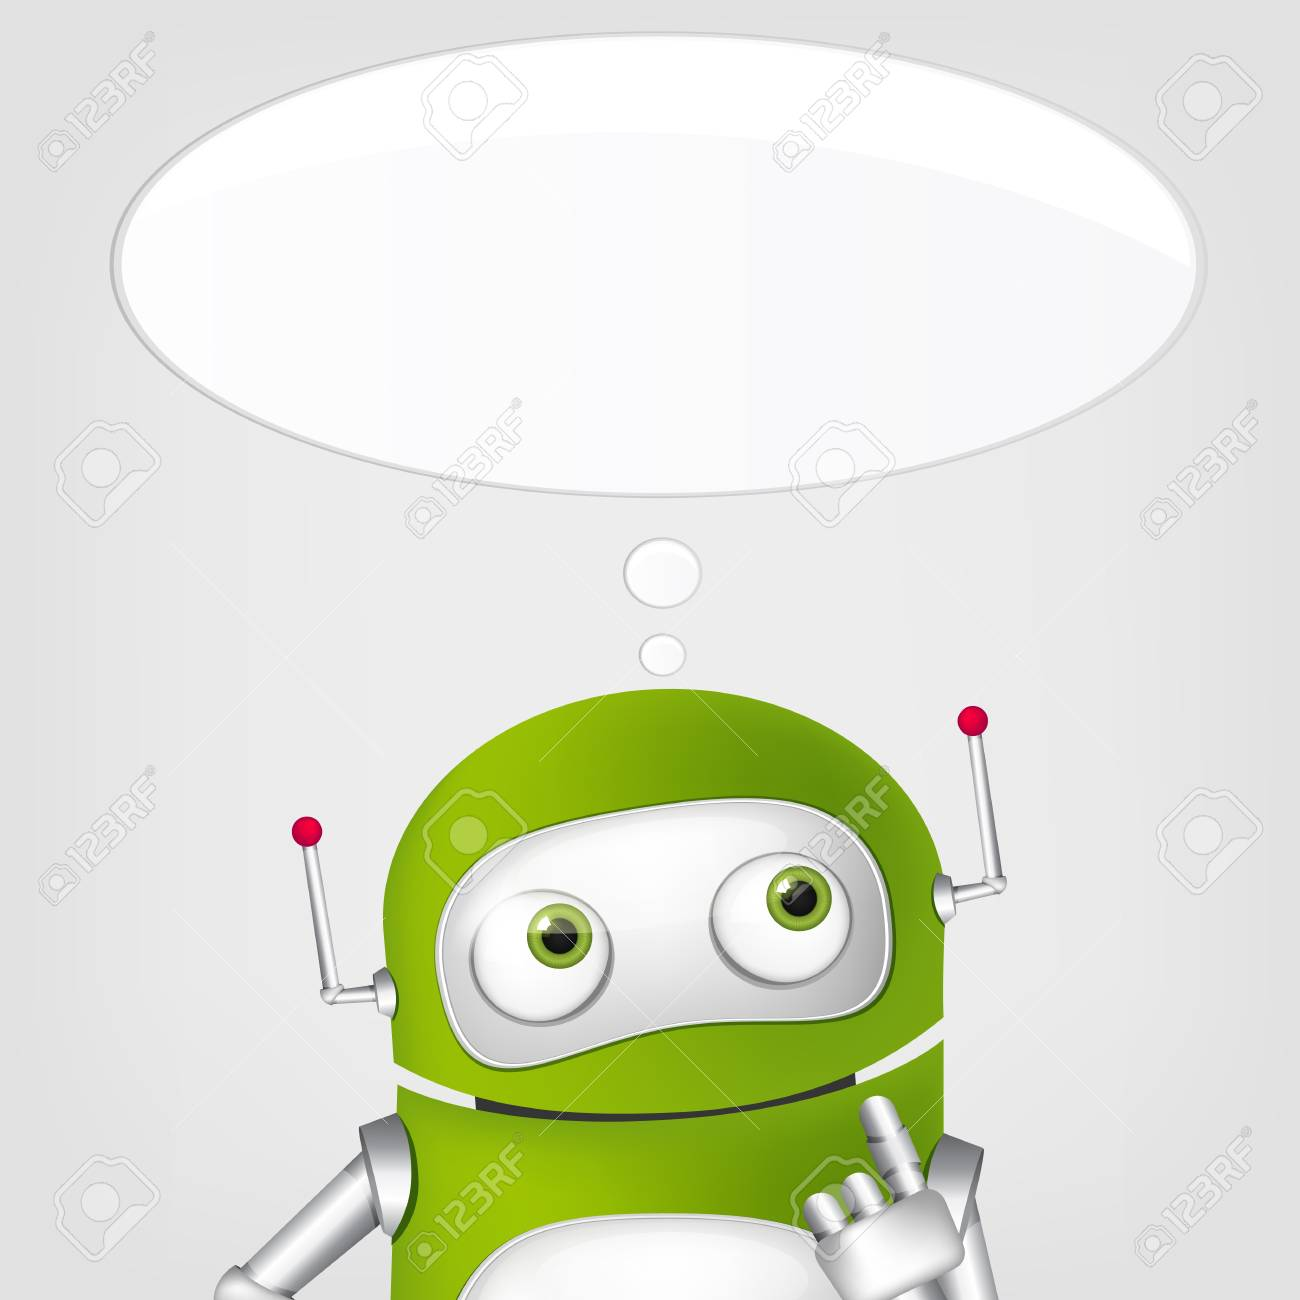 Cute Robot Stock Vector - 17977587